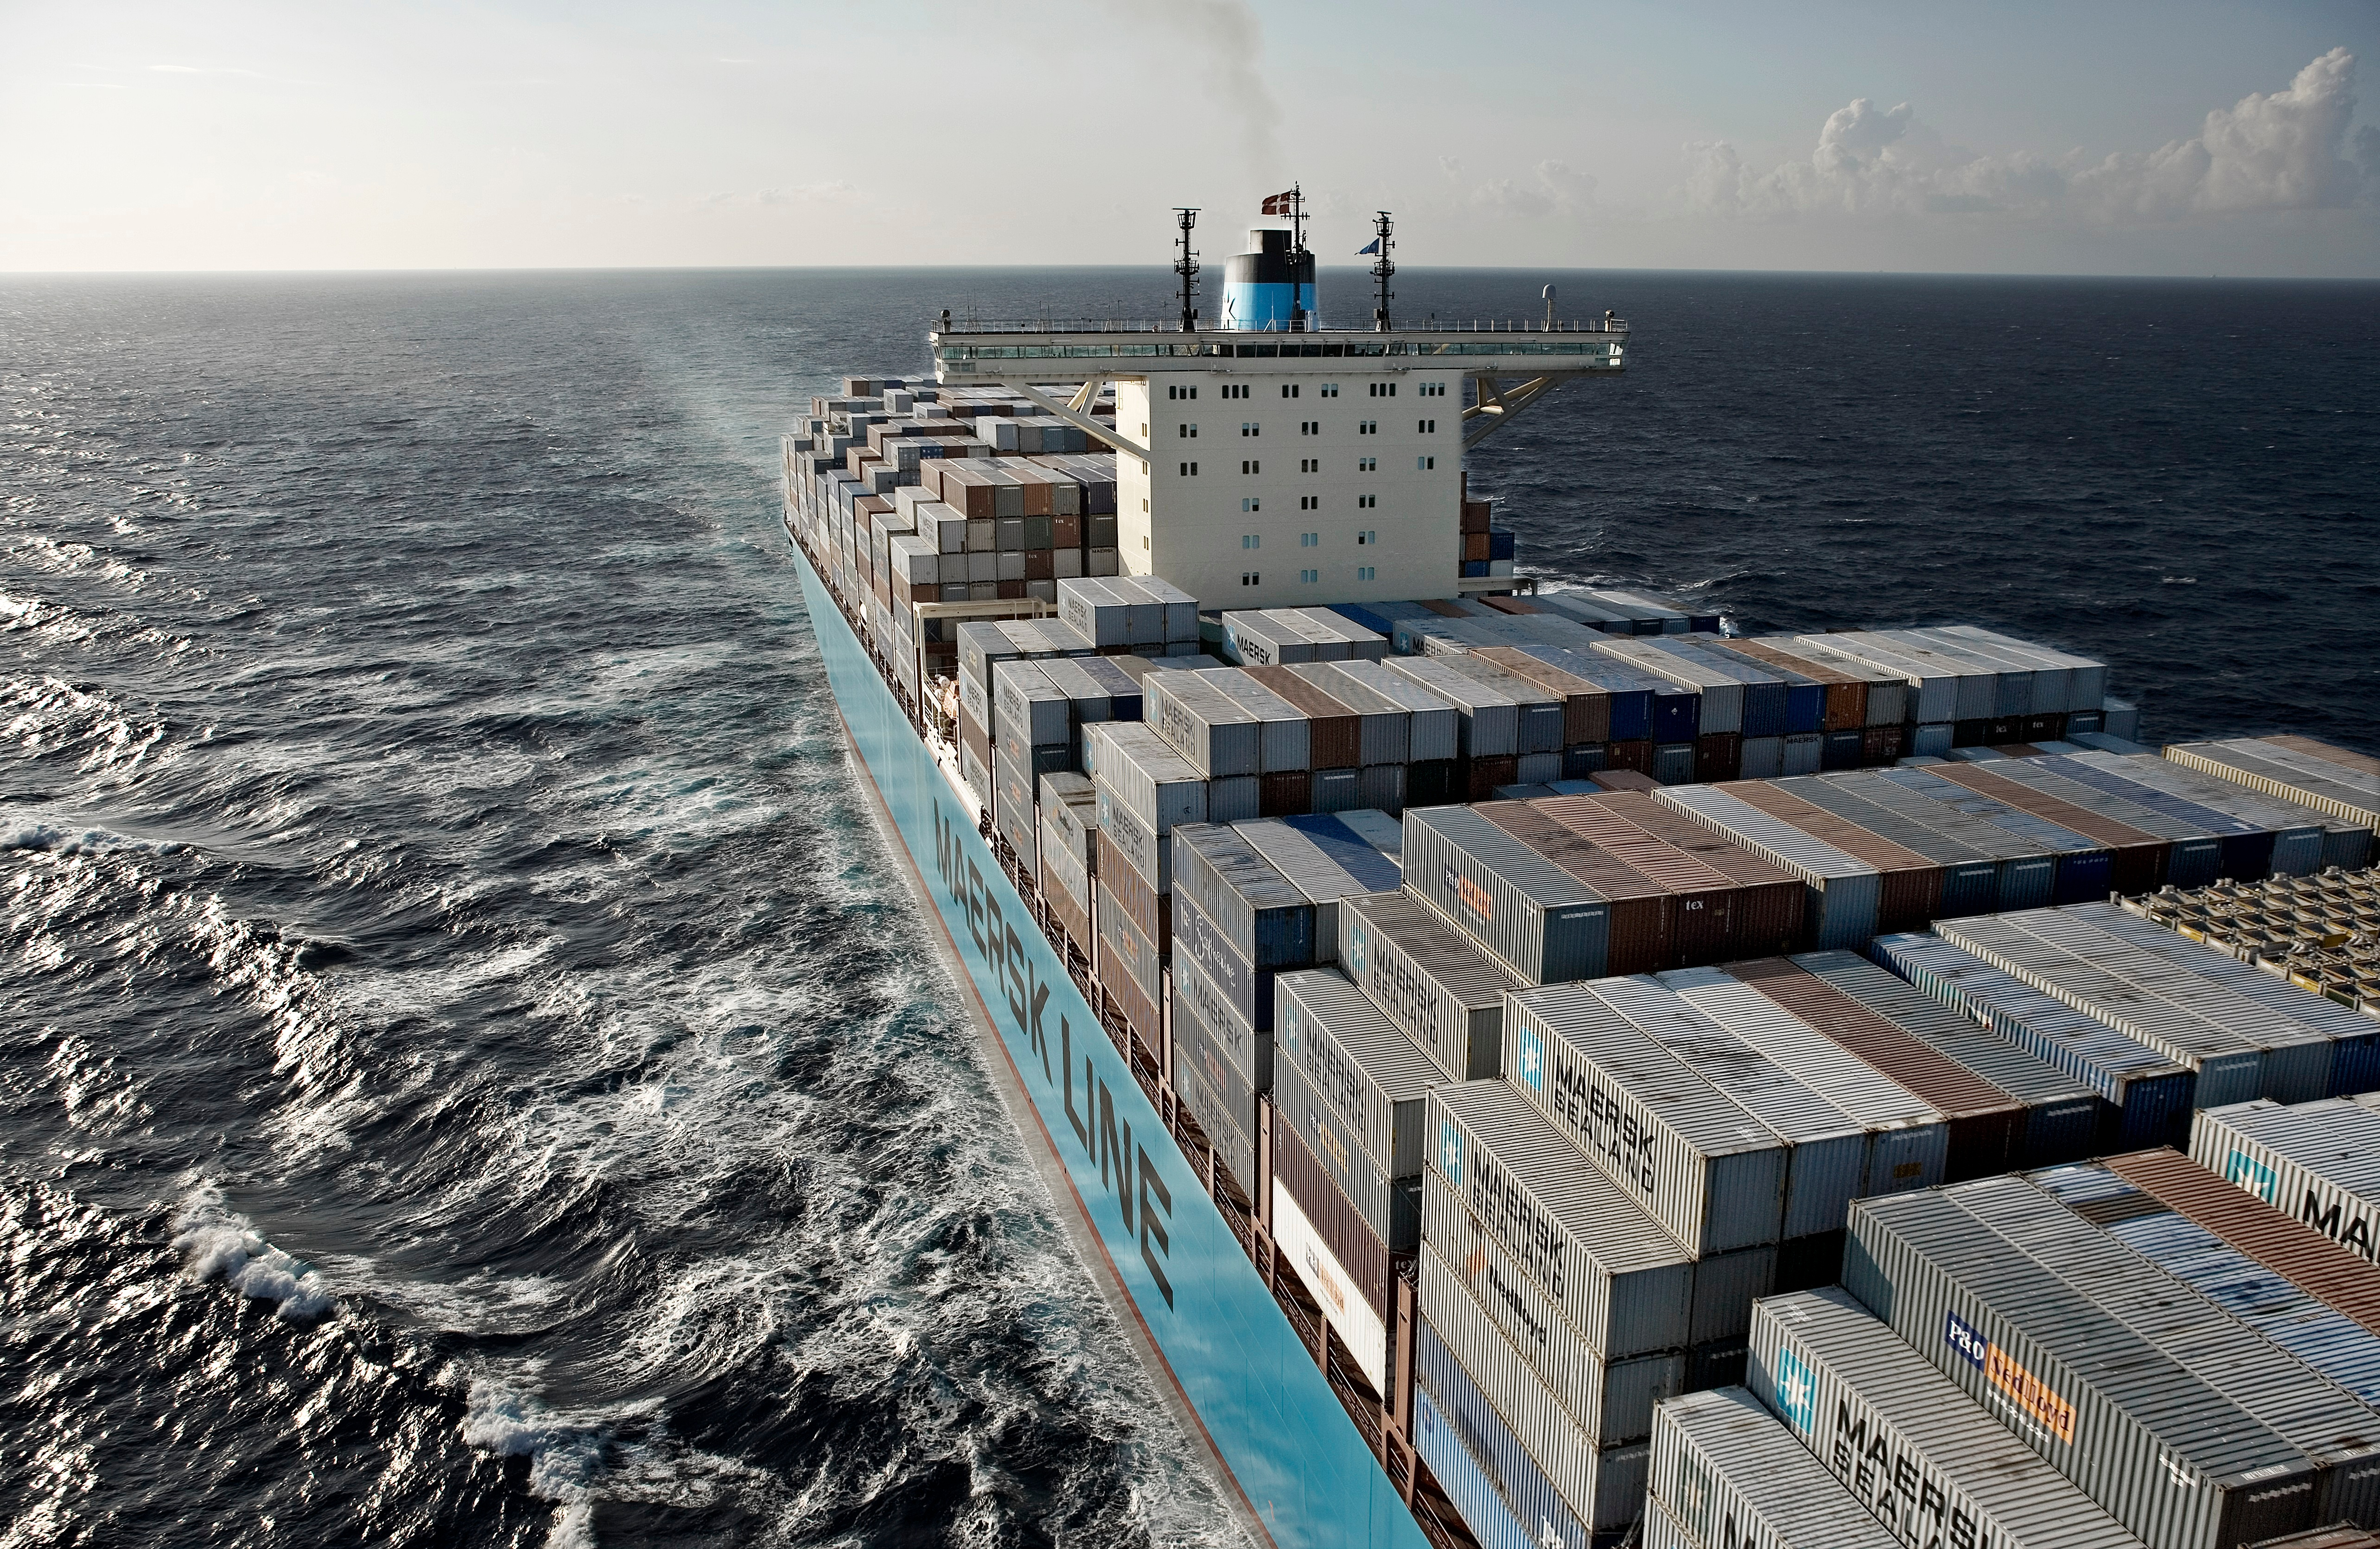 Over_Maersk_en_content_marketing_in_containerformaat_3.jpg